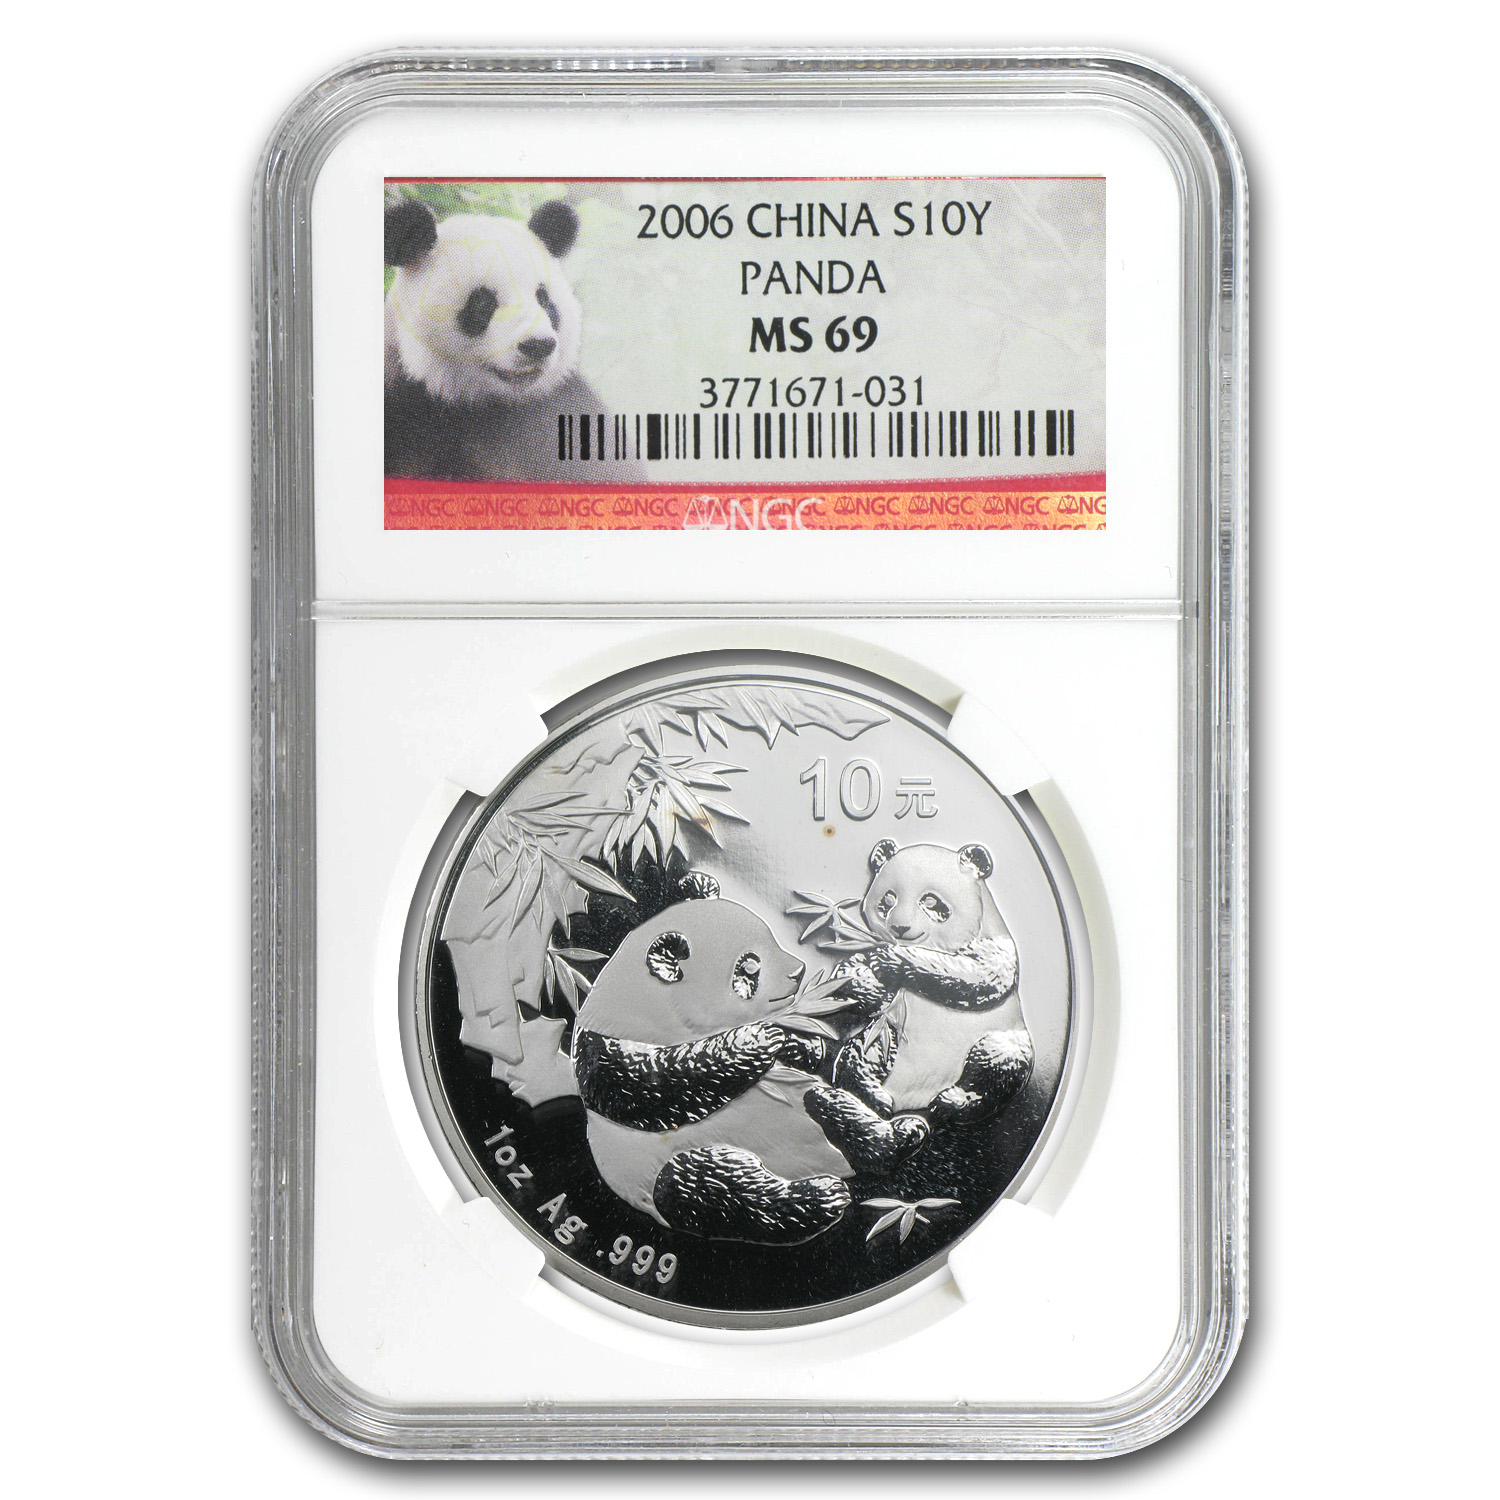 2006 1 oz Silver Chinese Panda MS-69 NGC